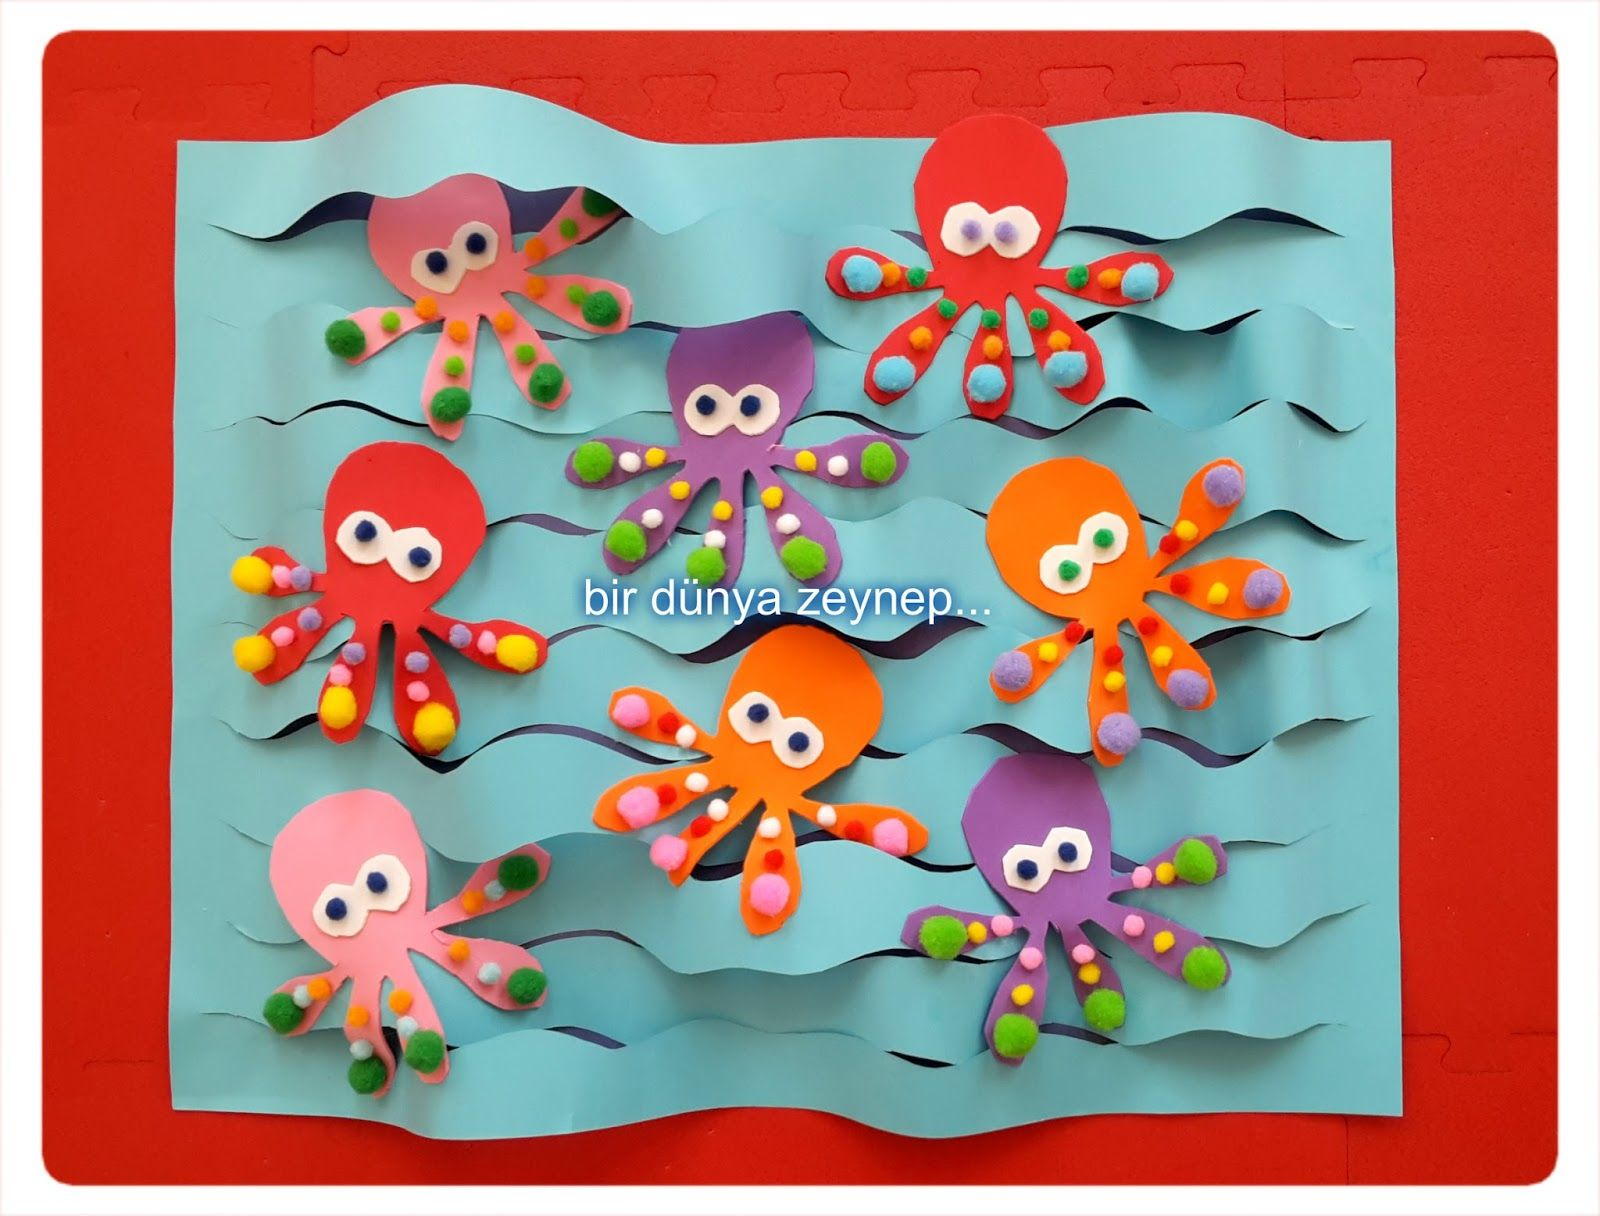 Octopus Craft Idea For Kids Crafts And Worksheets For Preschool Toddler And Kindergarten